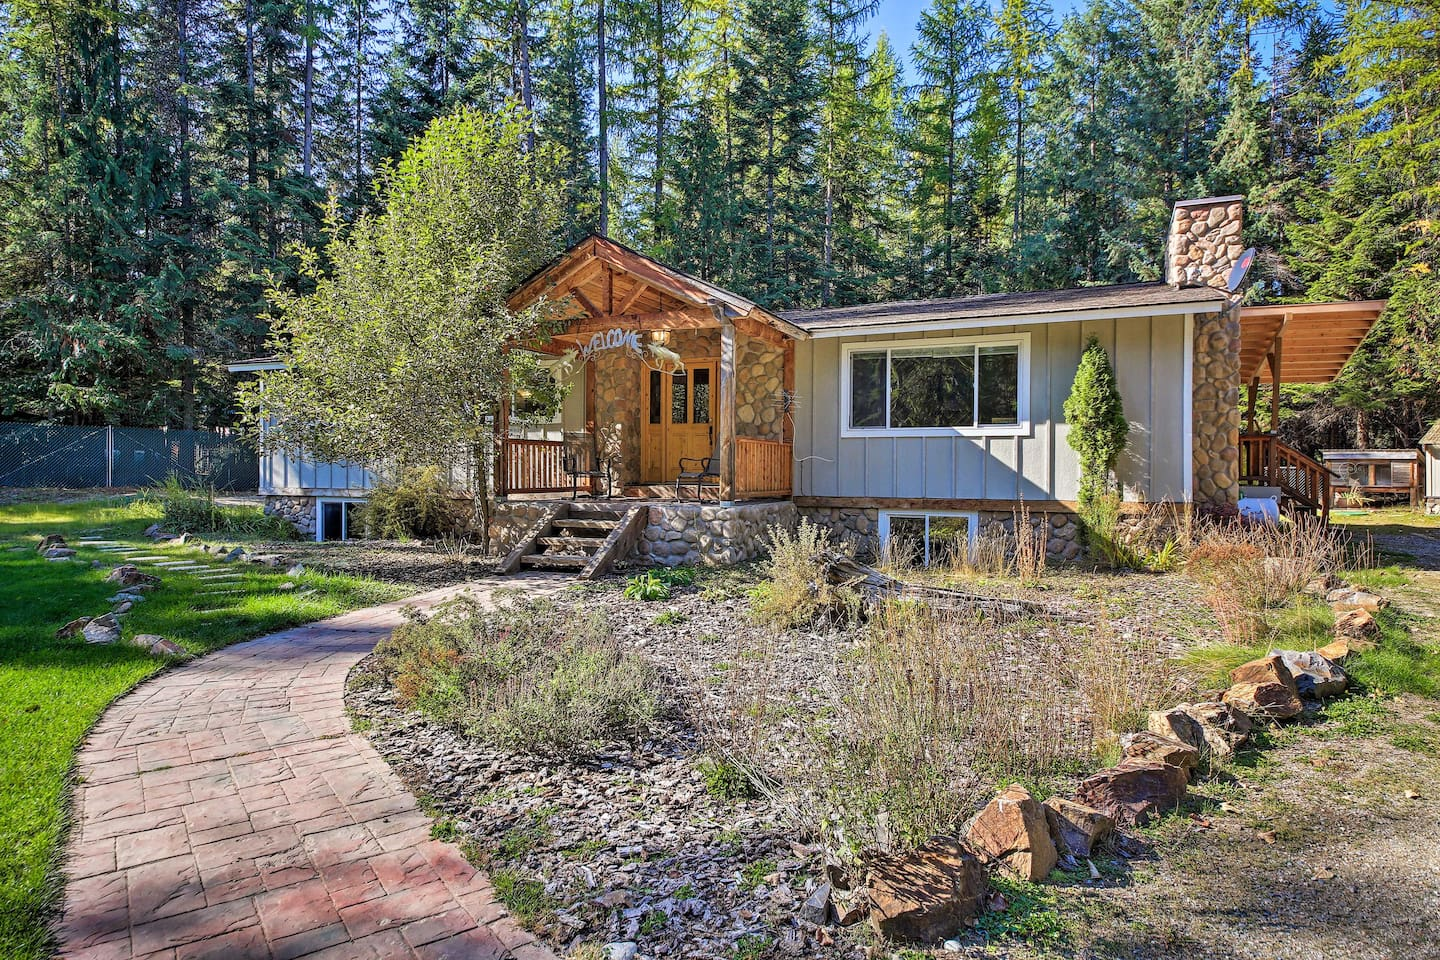 Priest Lake adventures await at this newly renovated vacation rental!